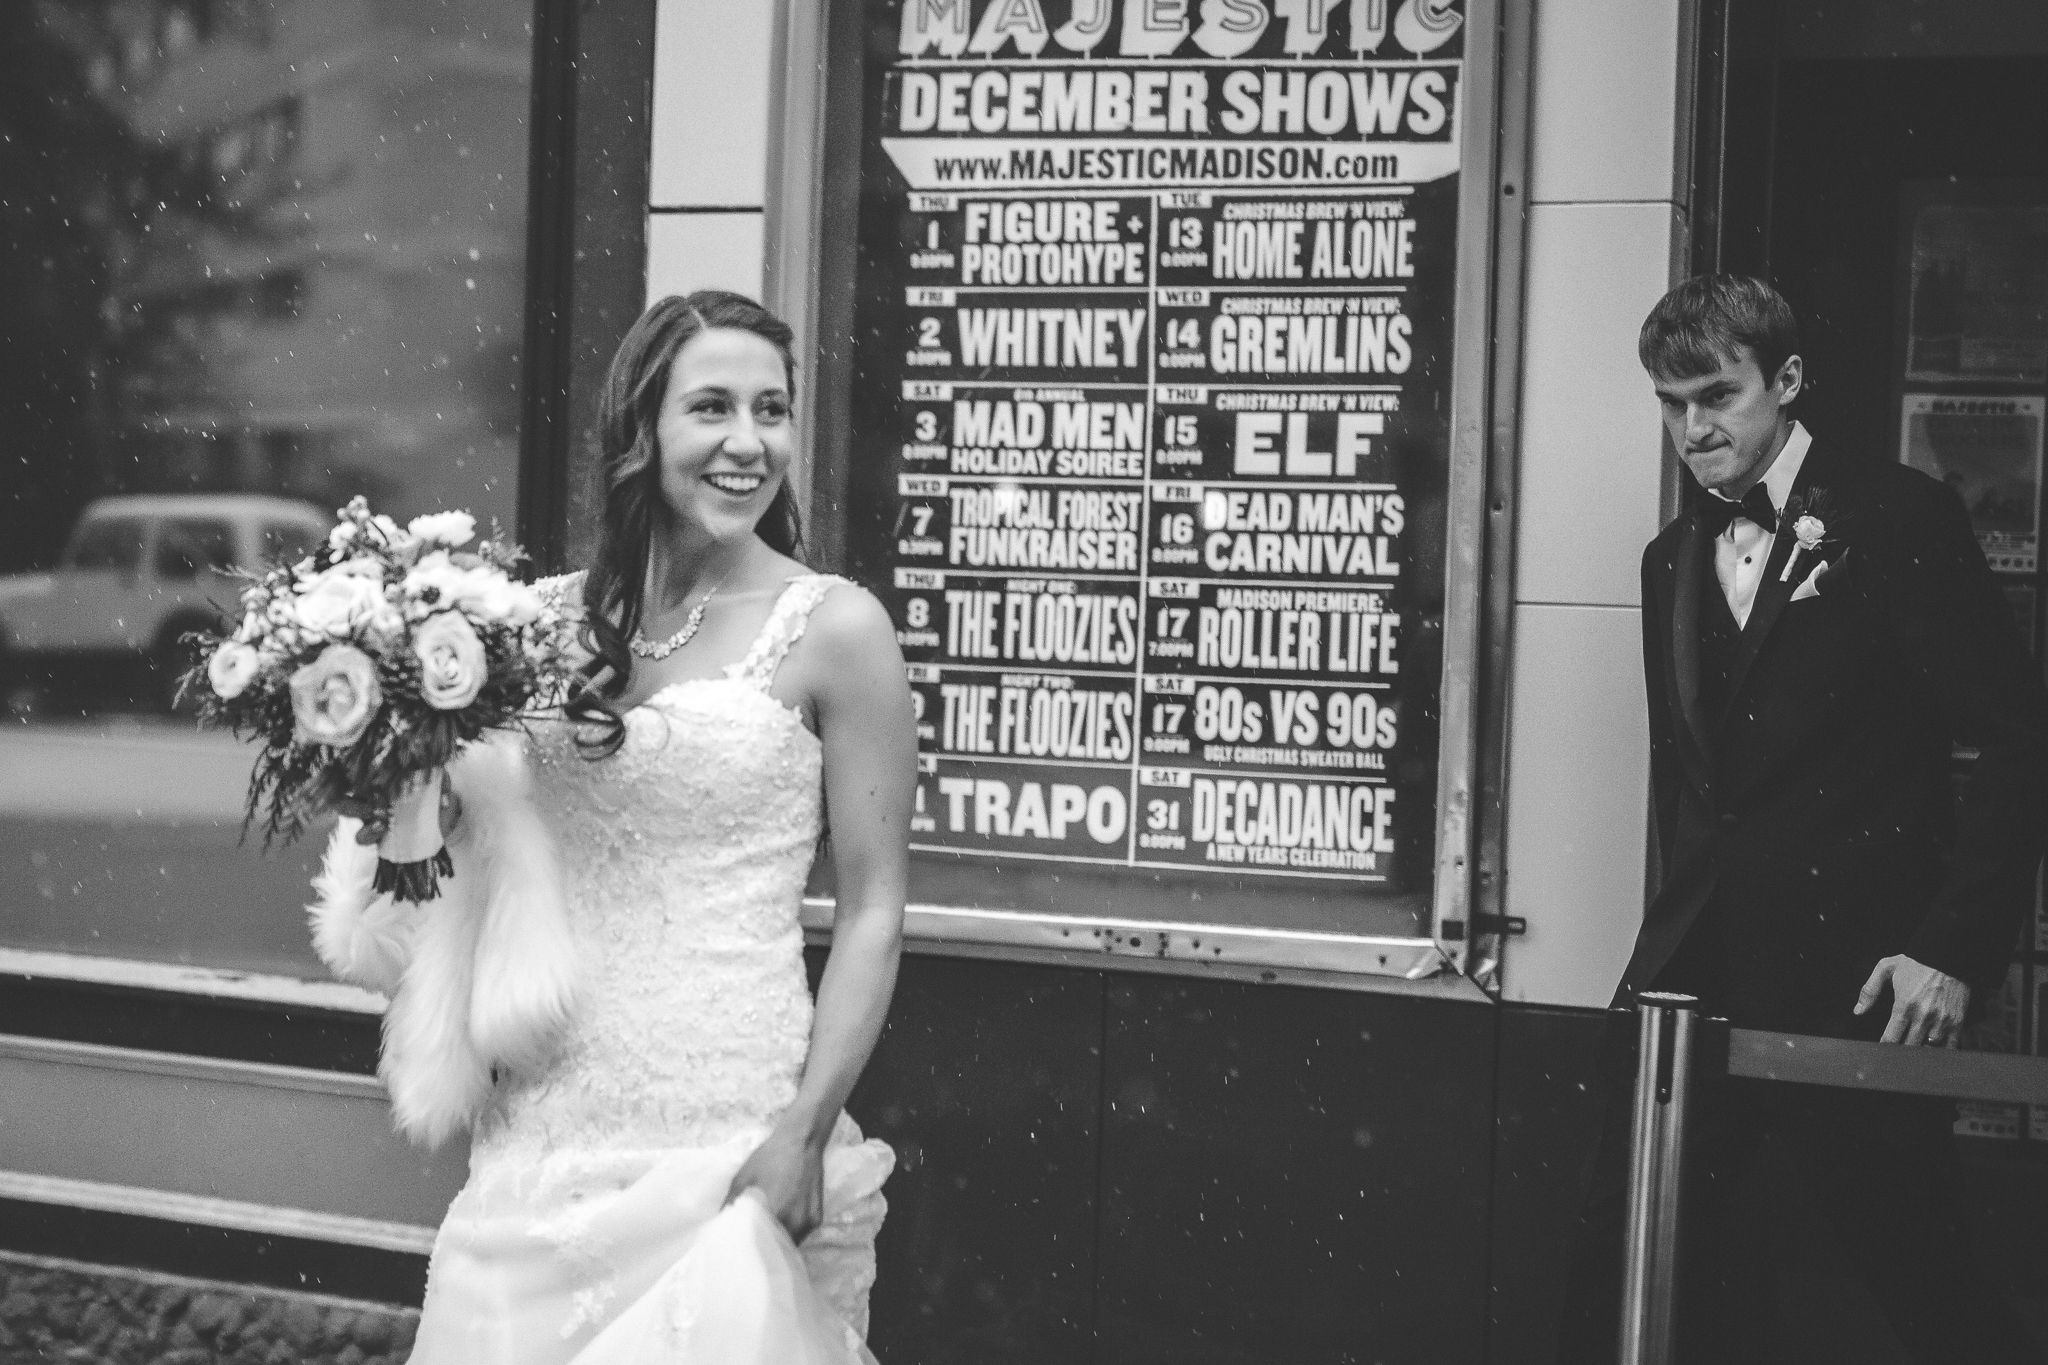 madison wisconsin winter wedding photographer-22.jpg